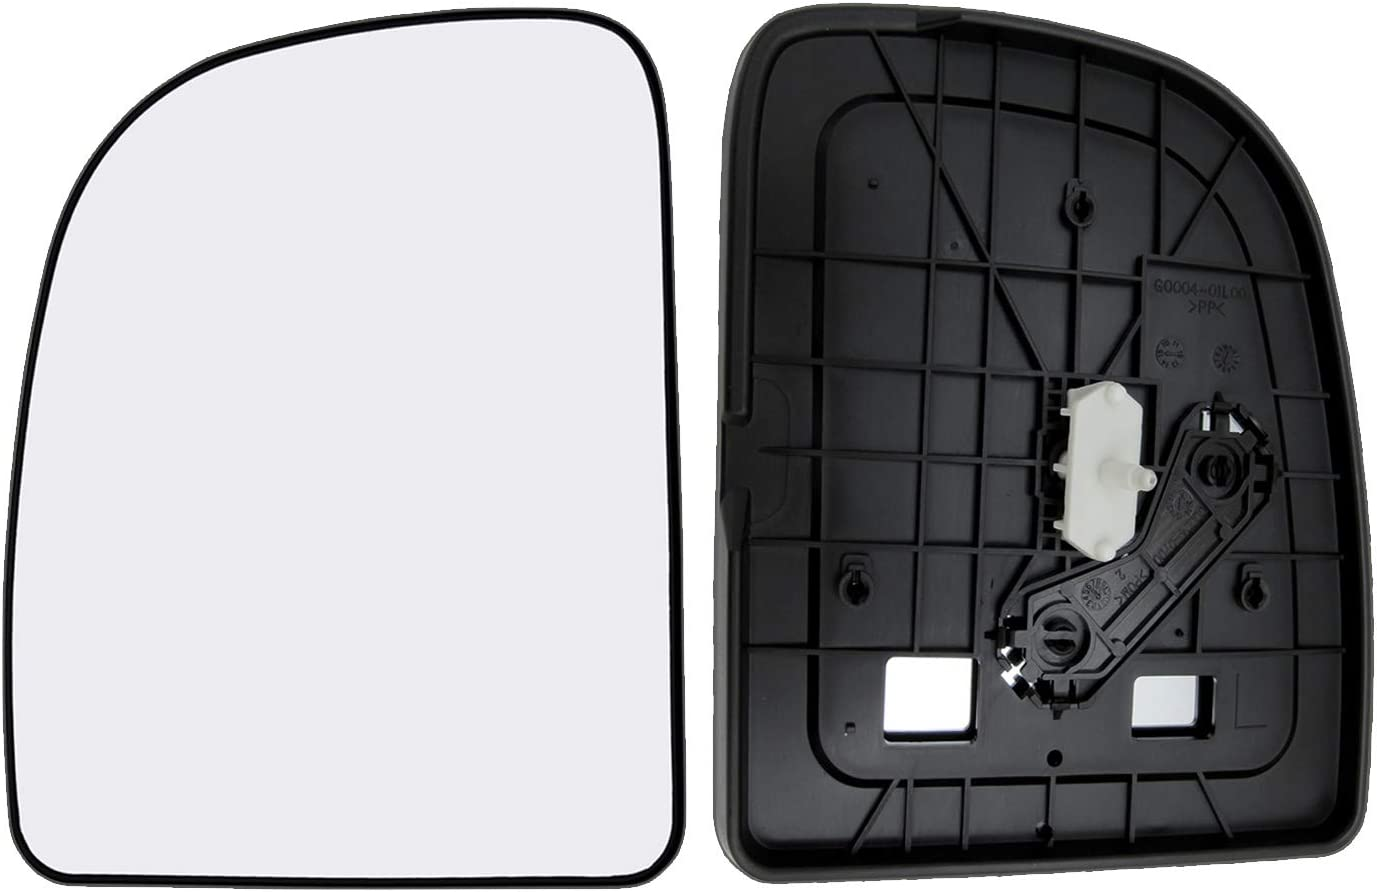 New Replacement Driver Side Mirror Glass W Backing Compatible With Ford E-150 E-250 E-350 Club Wagon Econoline Excursion F-250 Super Duty Sold By Rugged TUFF